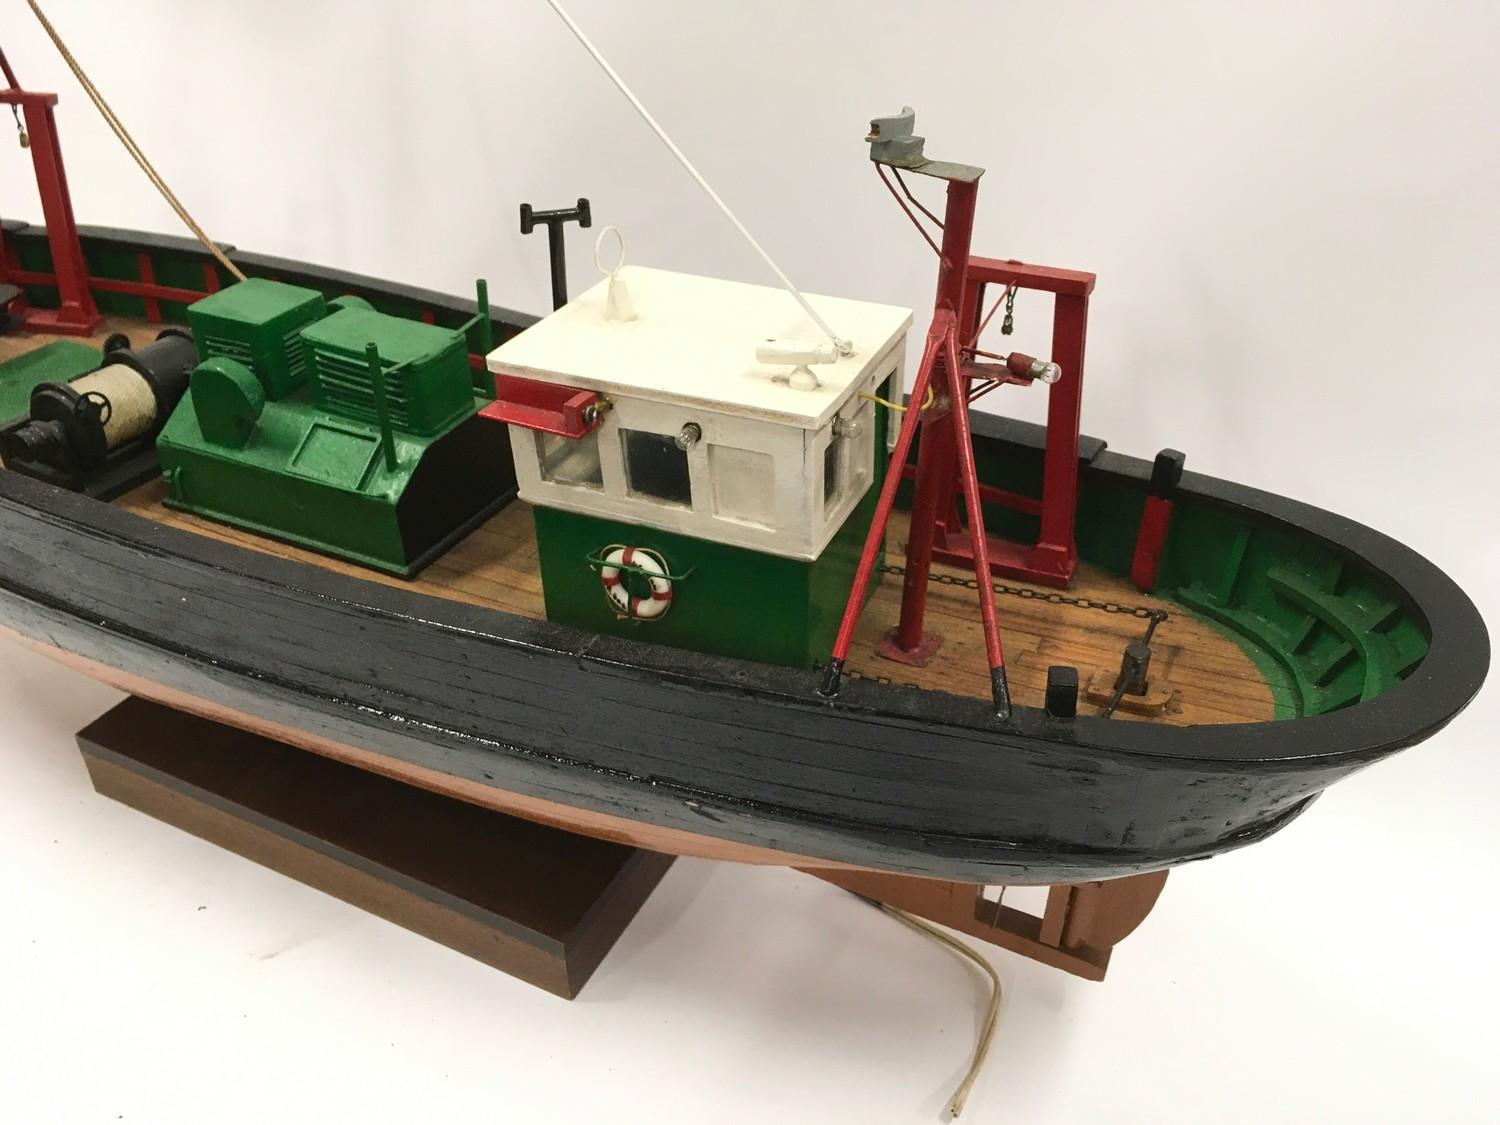 Wooden model of a boat. - Image 3 of 3